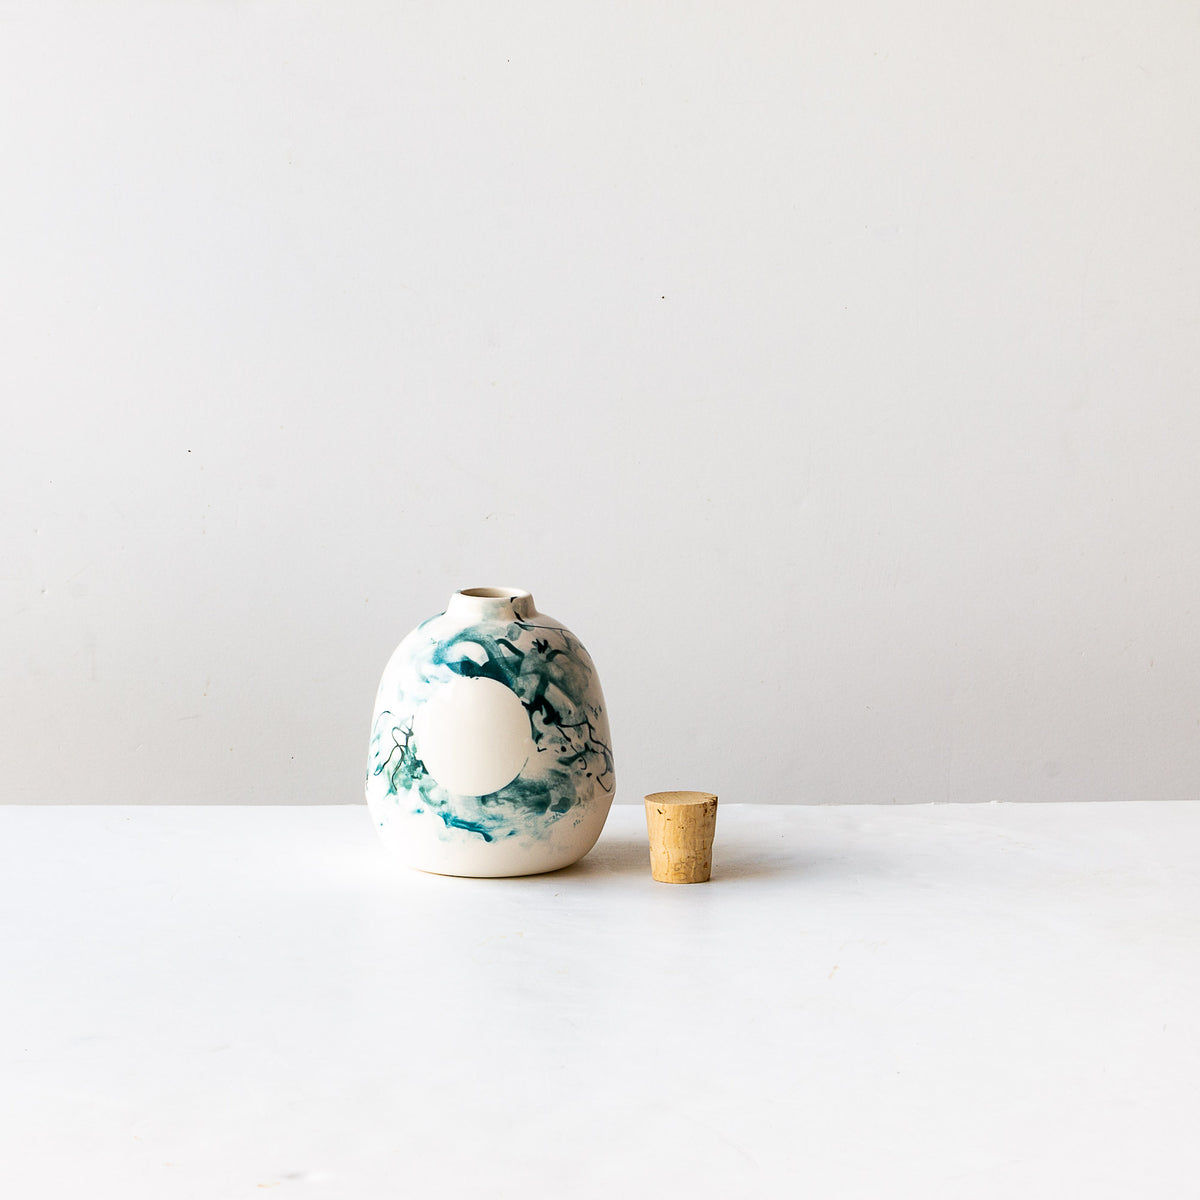 Handmade Mini Porcelain Vase With Cork - Sold by Chic & Basta